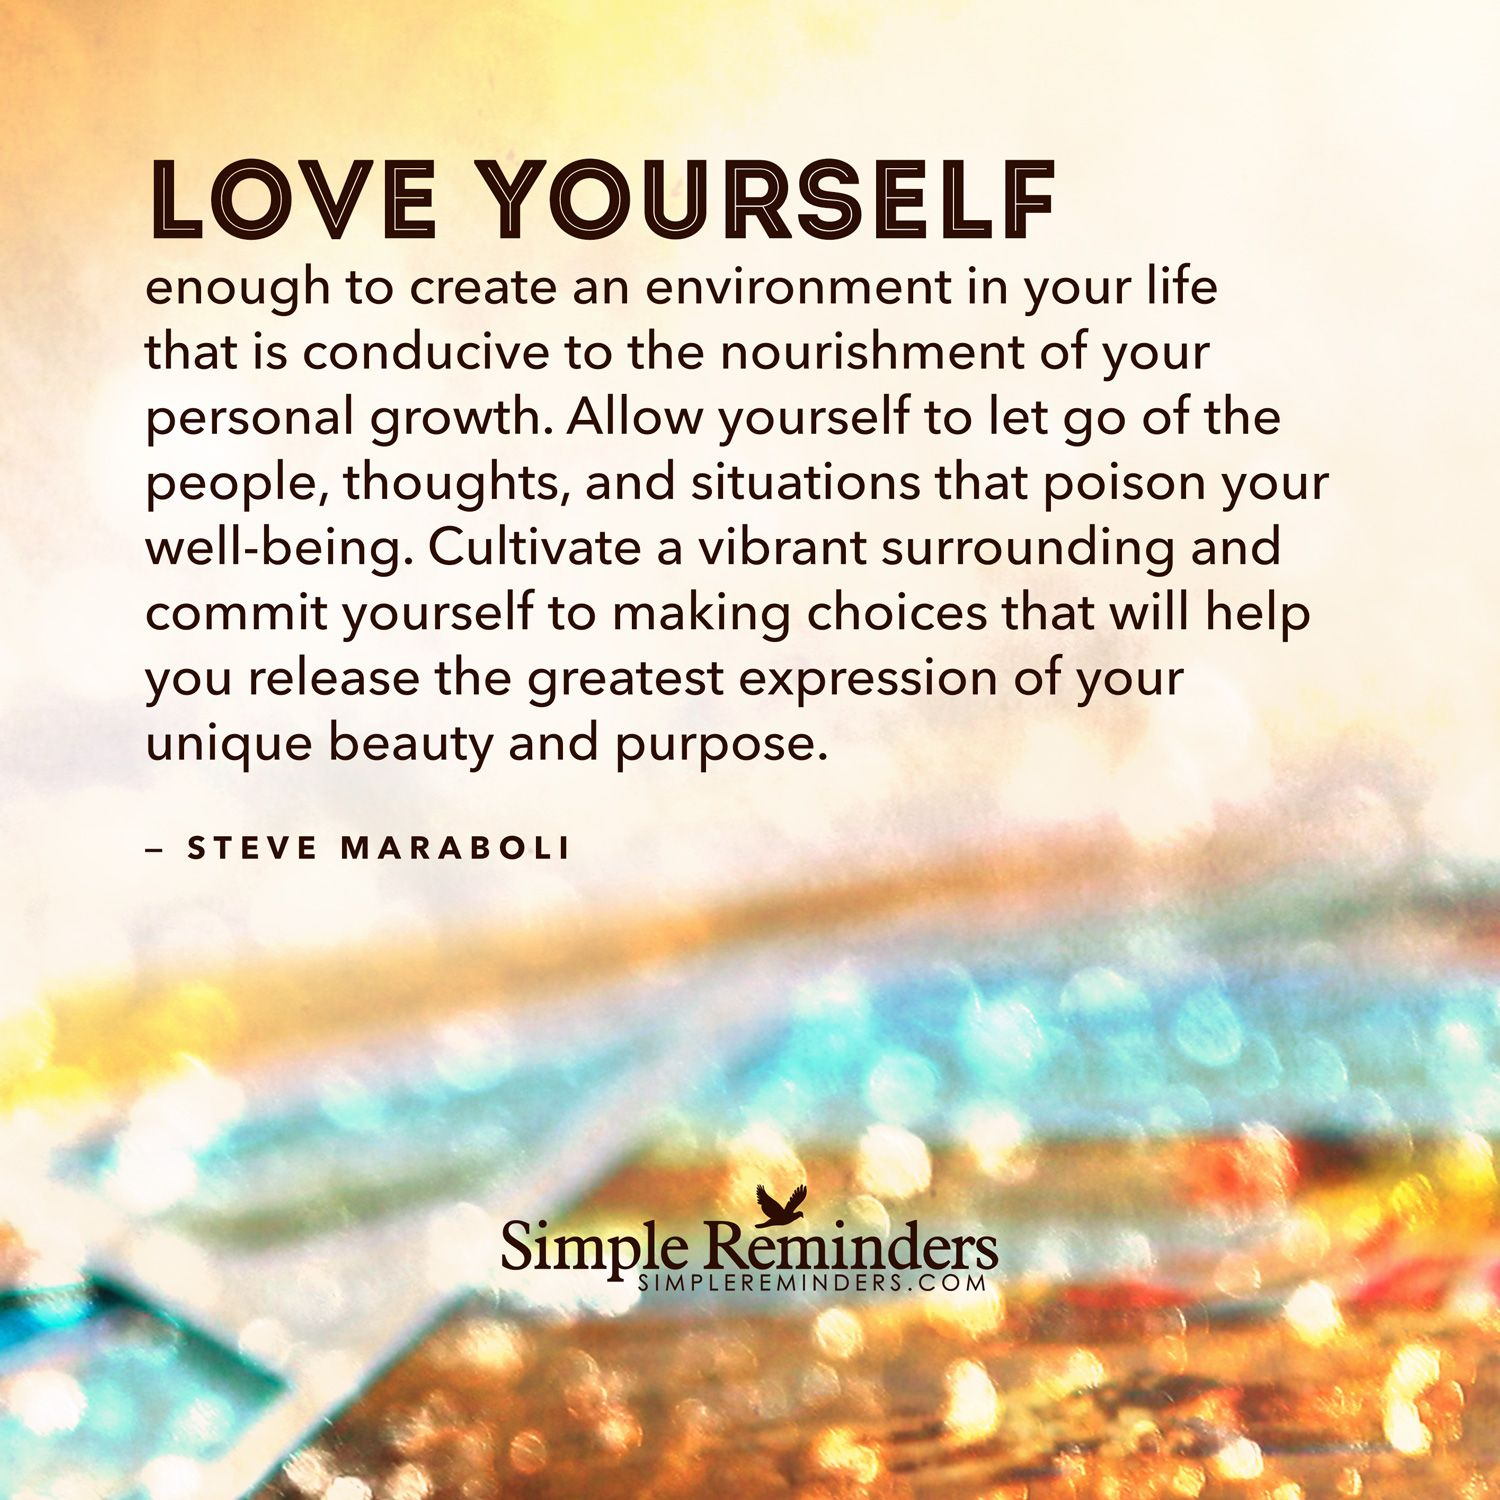 Personal Growth Quotes Love Yourself Enough To Create An Environment In Your Life That Is